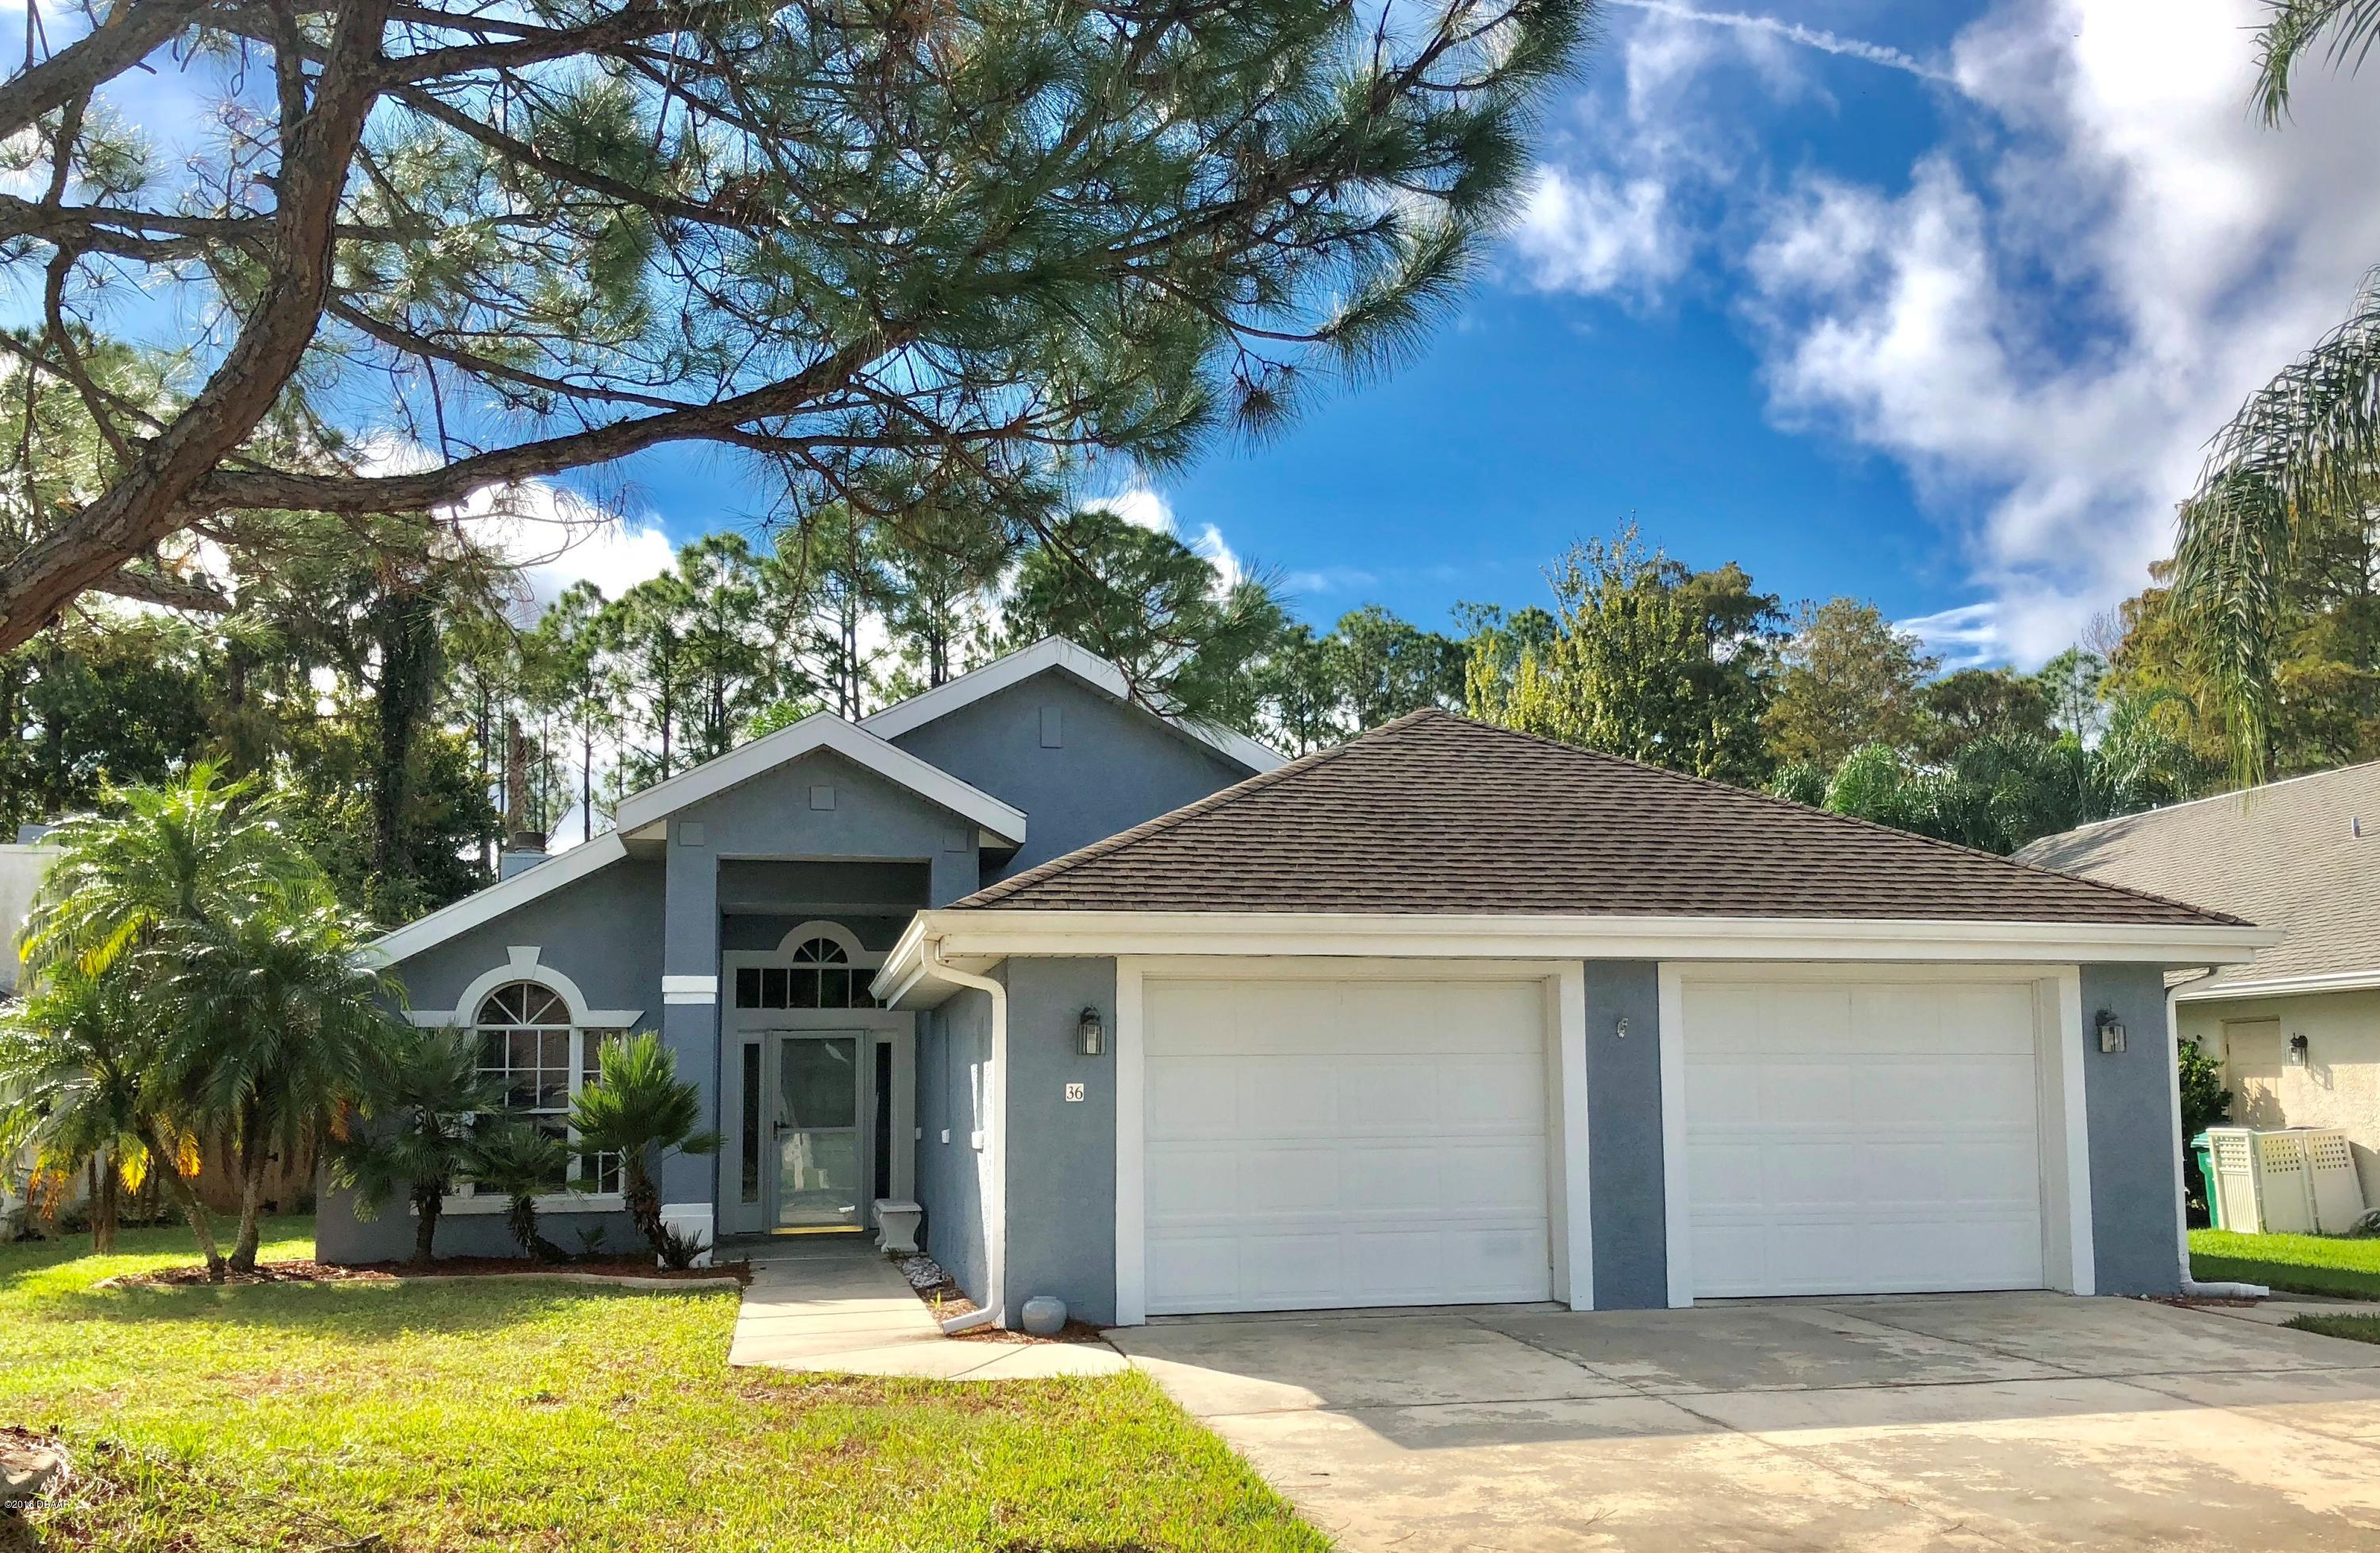 Photo of 36 Cormorant Circle, Daytona Beach, FL 32119